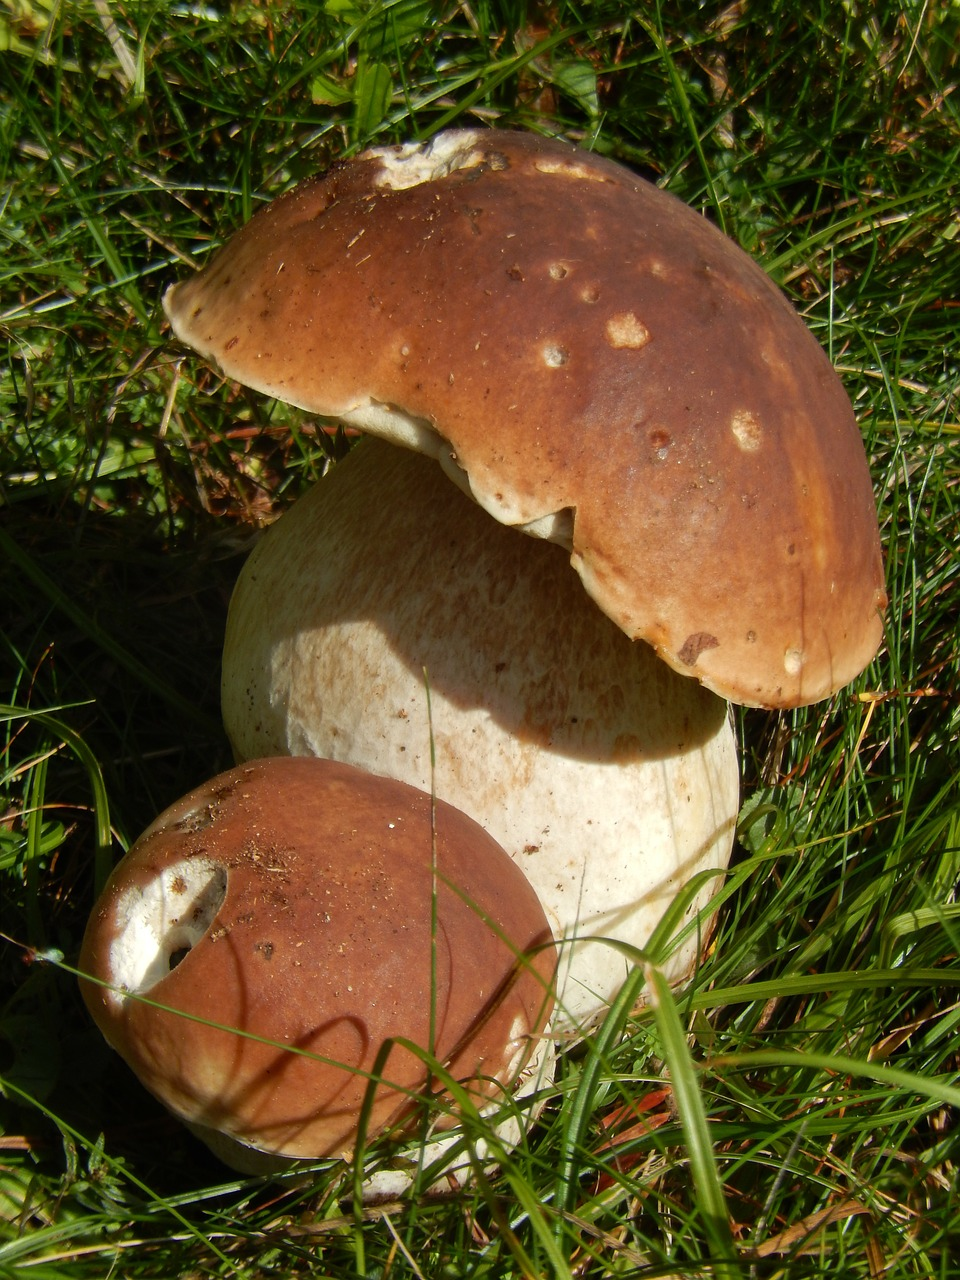 boletus,mushrooms,wood,free pictures, free photos, free images, royalty free, free illustrations, public domain